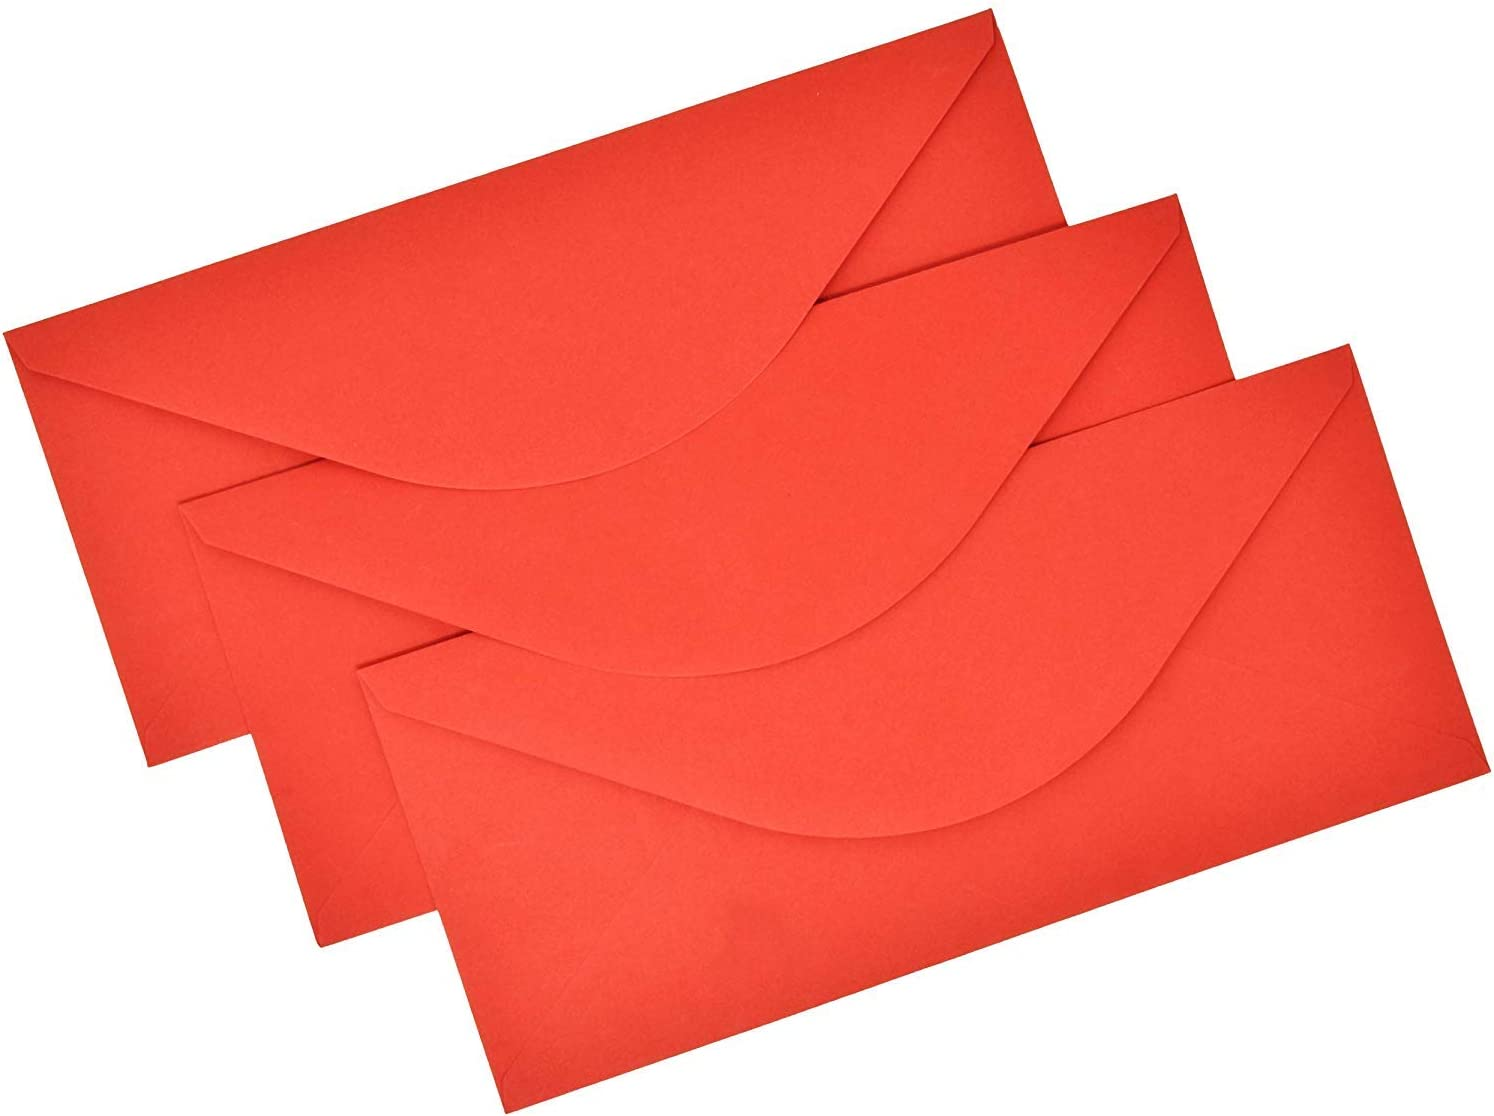 100 Red Envelopes #10 Holiday Christmas Envelope Invitations Standard Flap Glue Seal Closure for Wedding Birthday Card Stationary Office Business Letter Notes Mailing Supplies by Gift Boutique